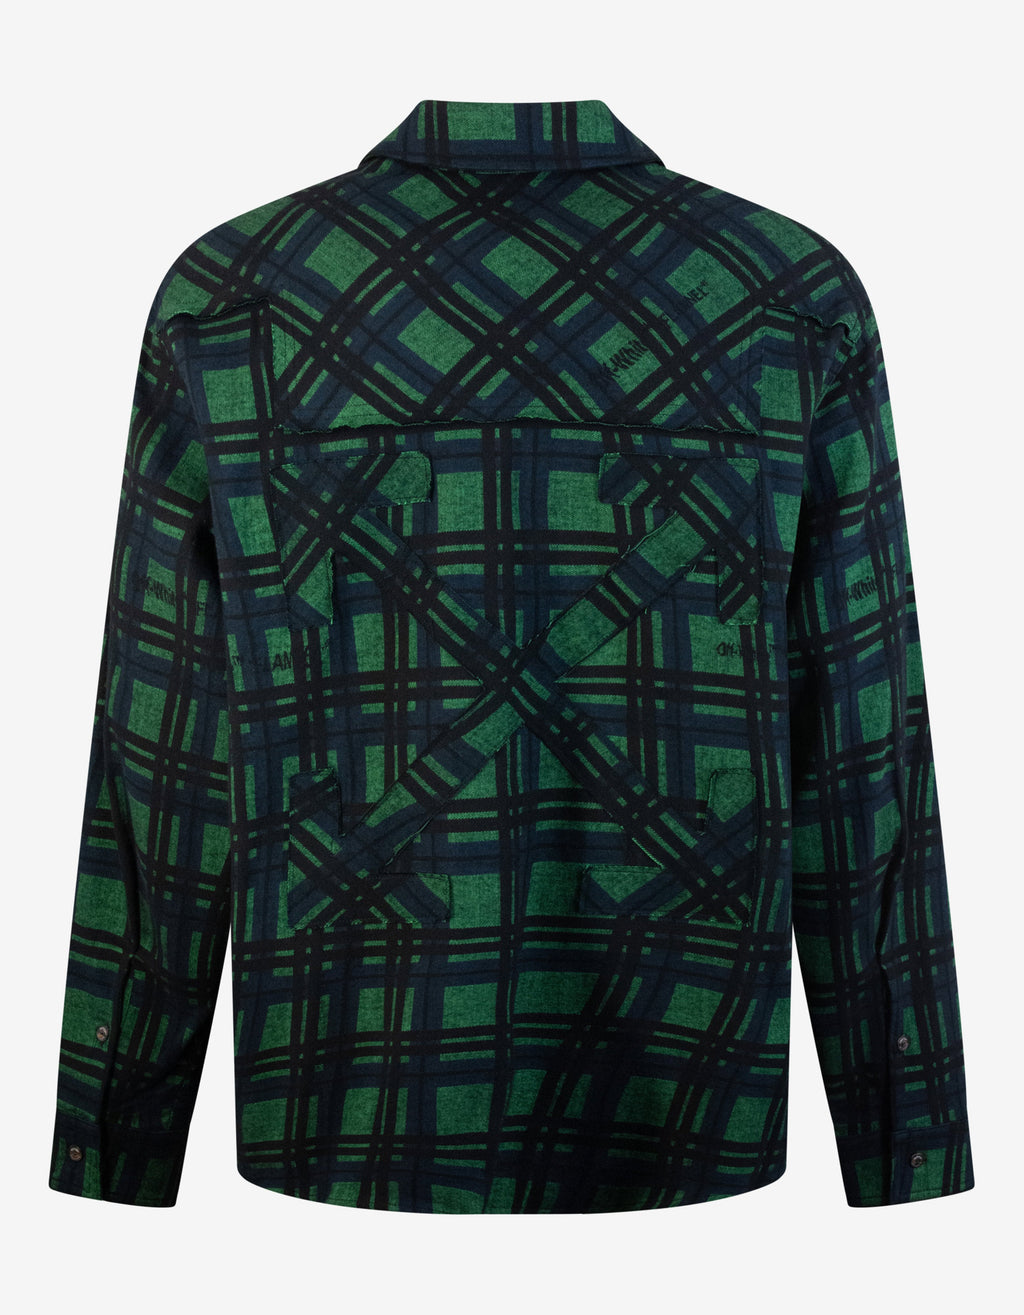 Green & Black Flannel Check Shirt